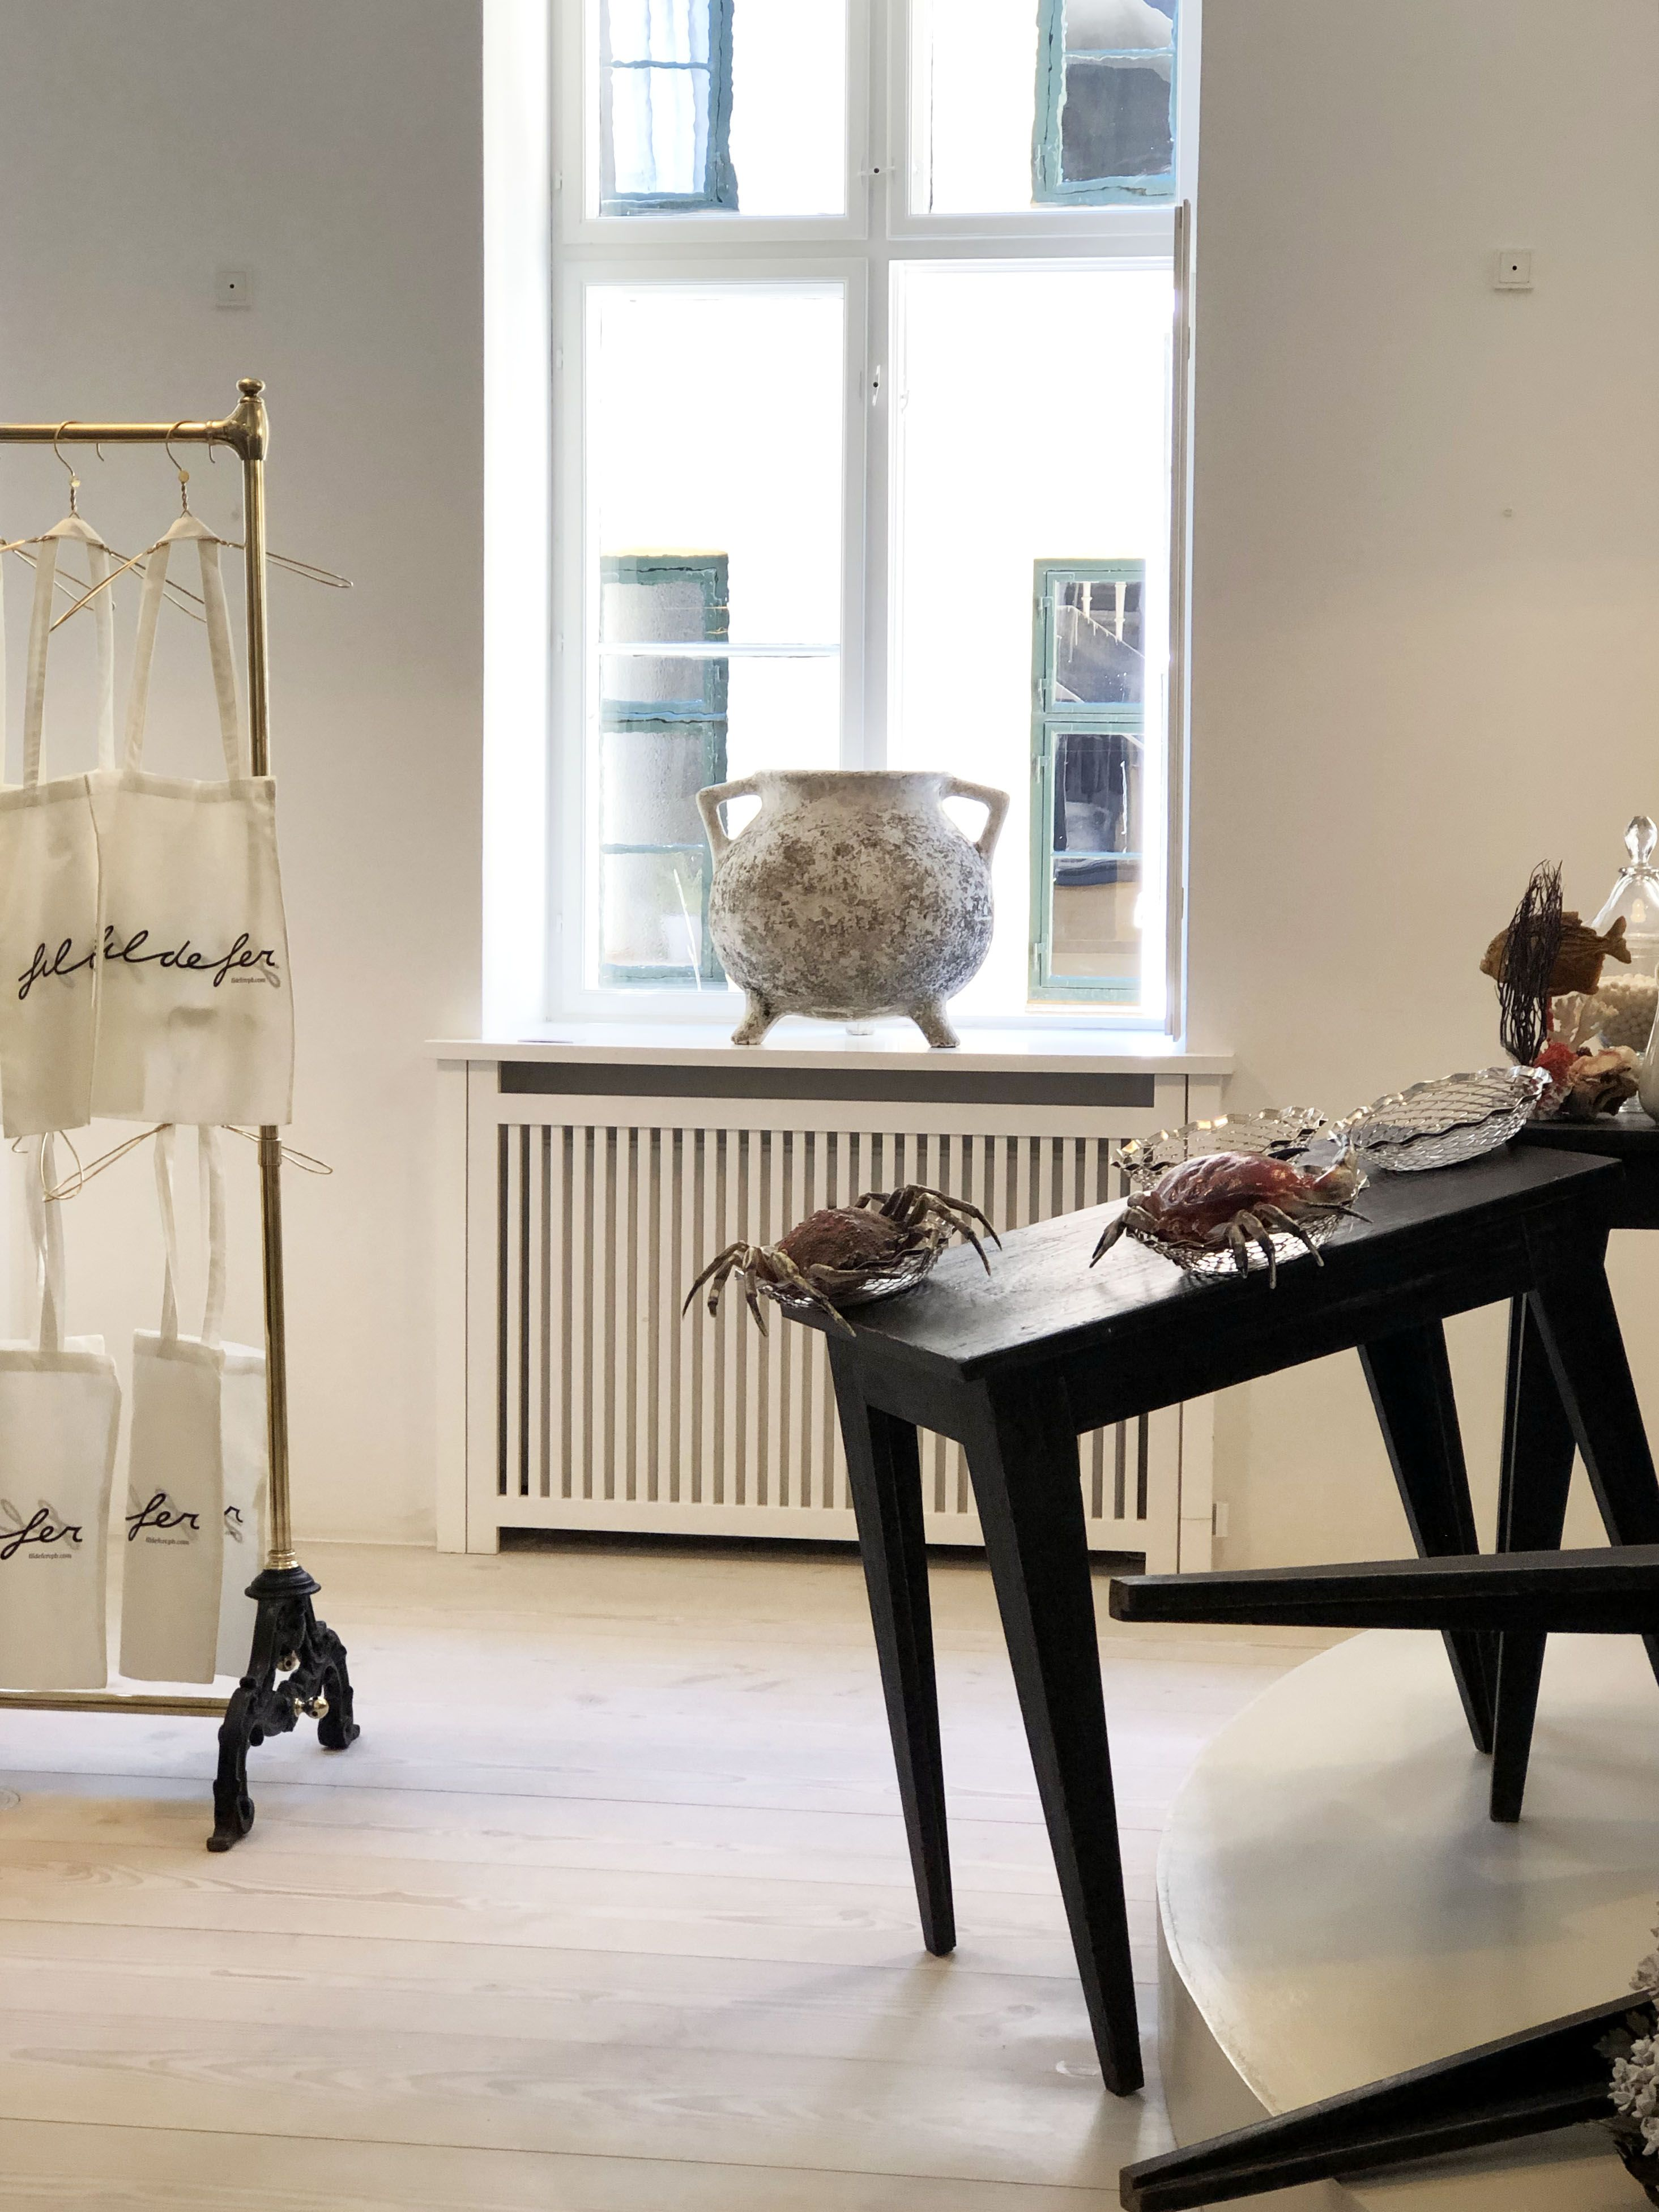 Located On Niels Hemmingsens Gade In The Center Of Copenhagen The